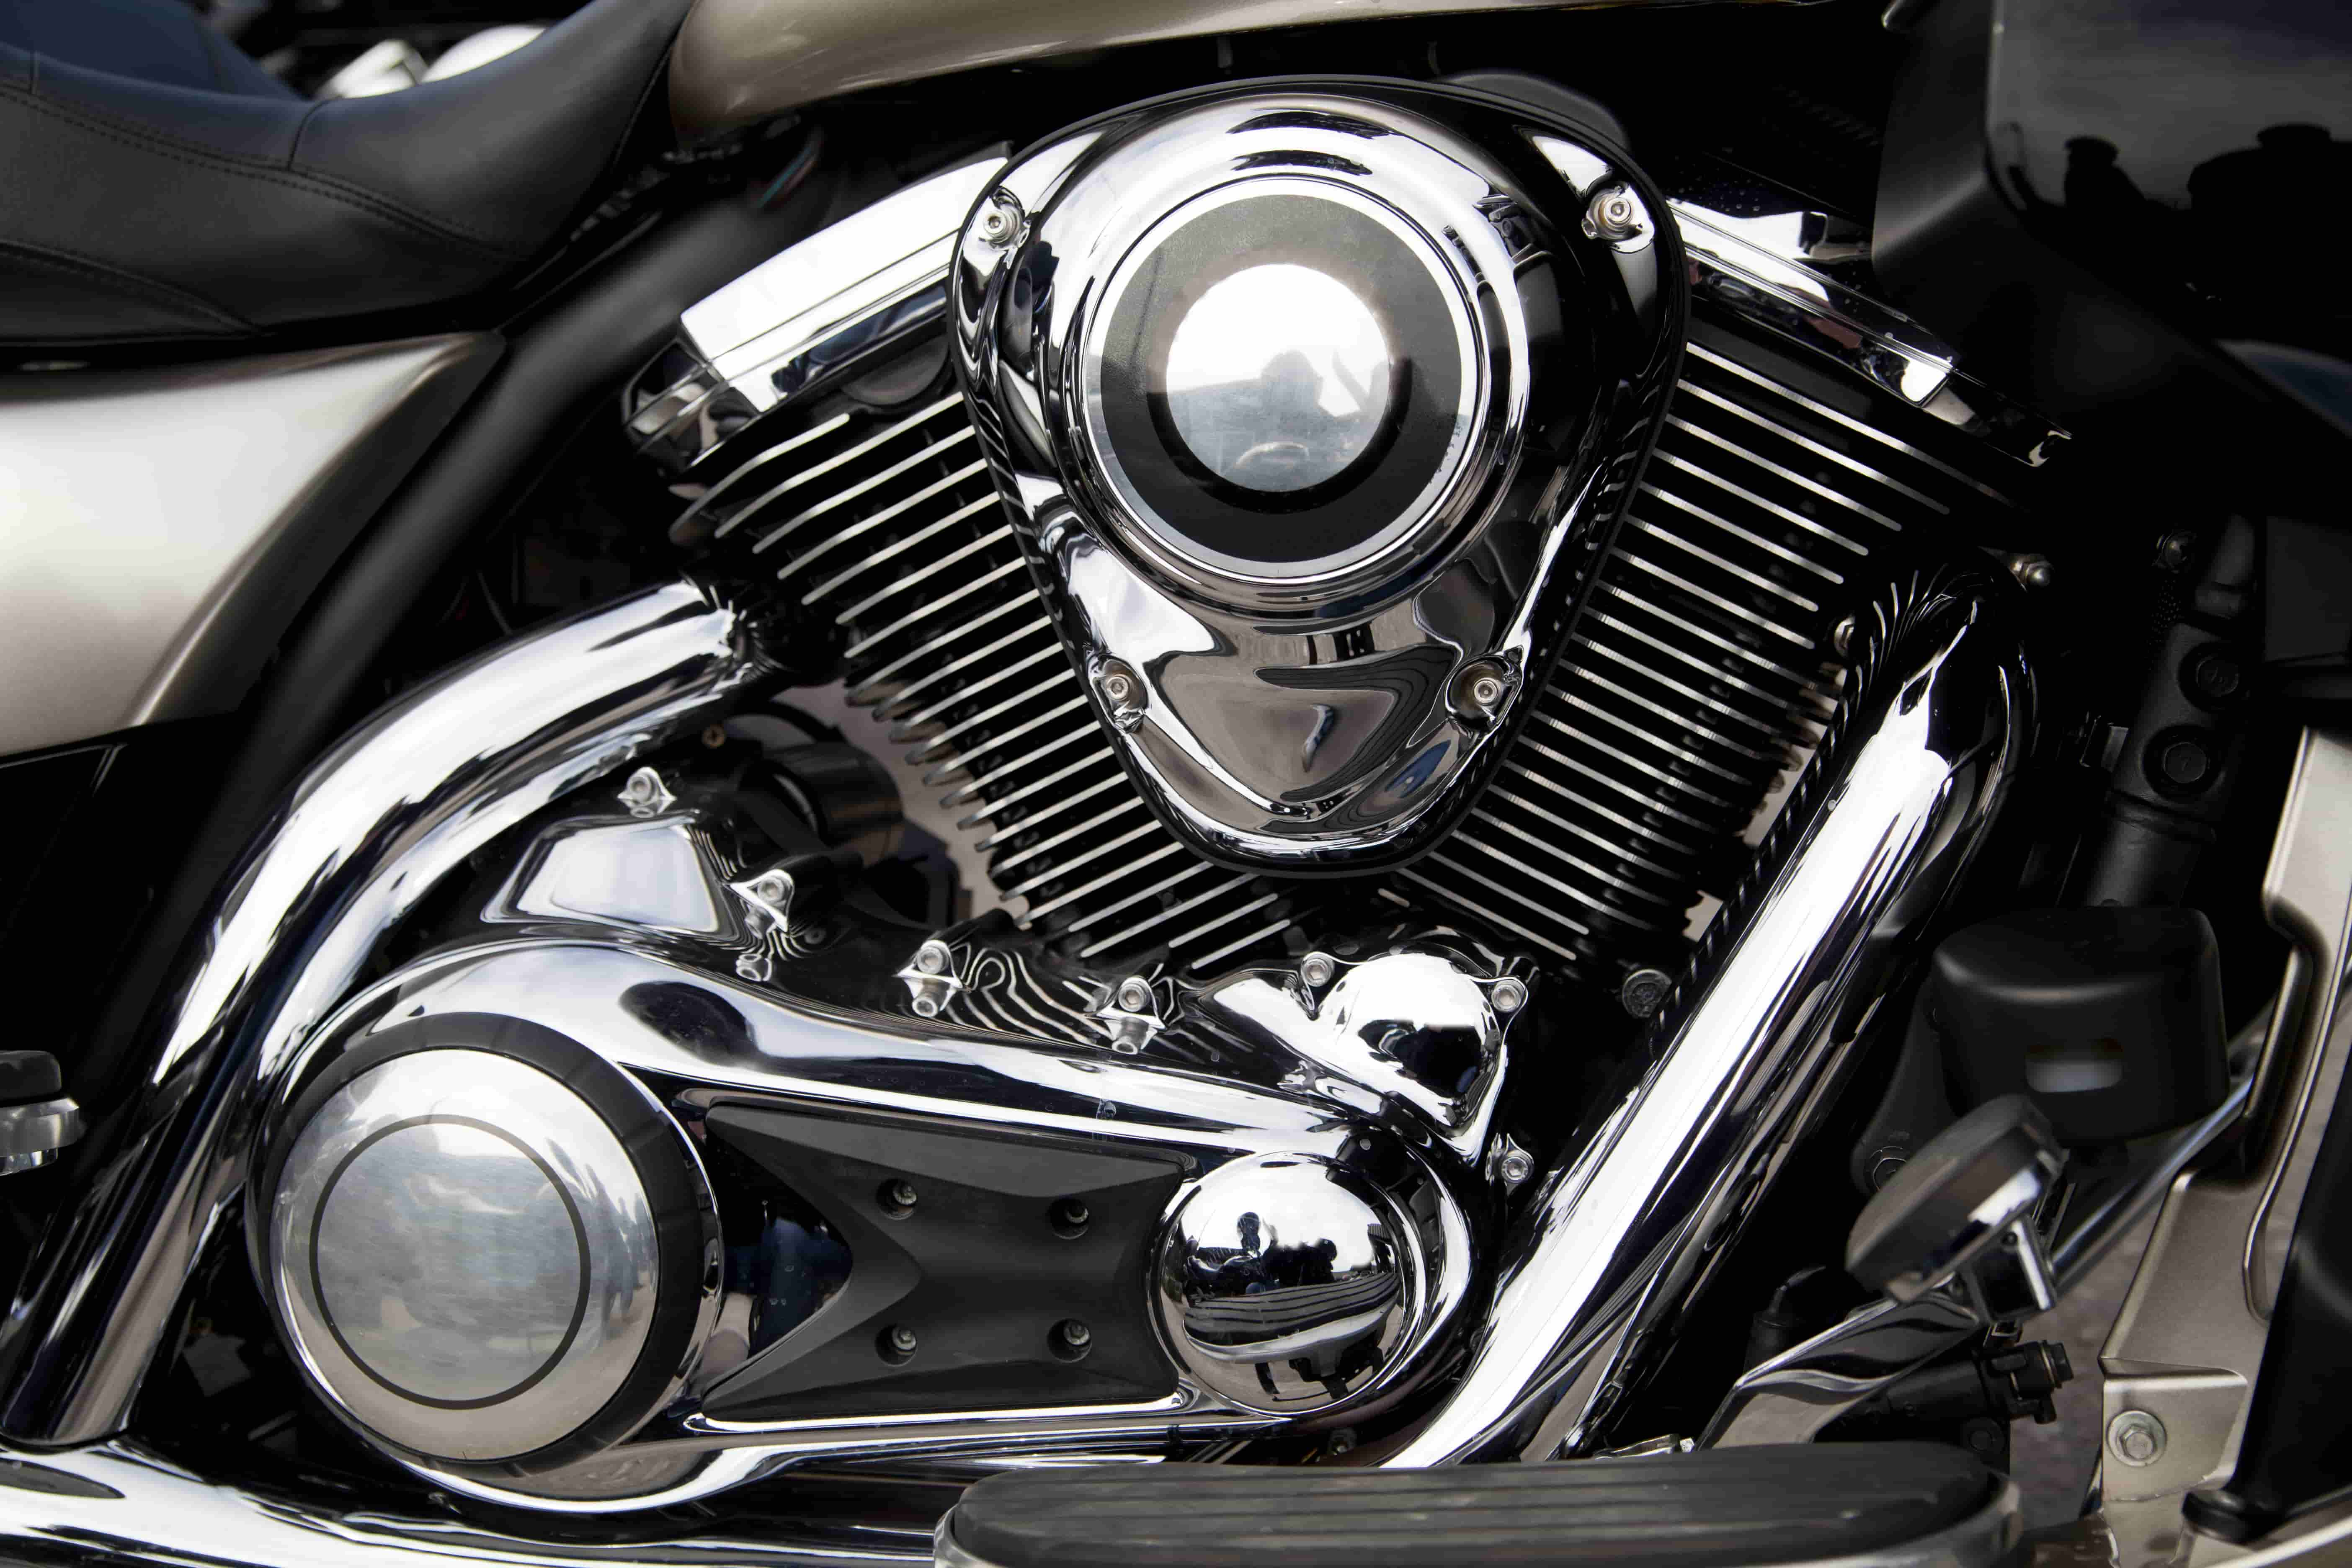 motorcycle engine clean close up